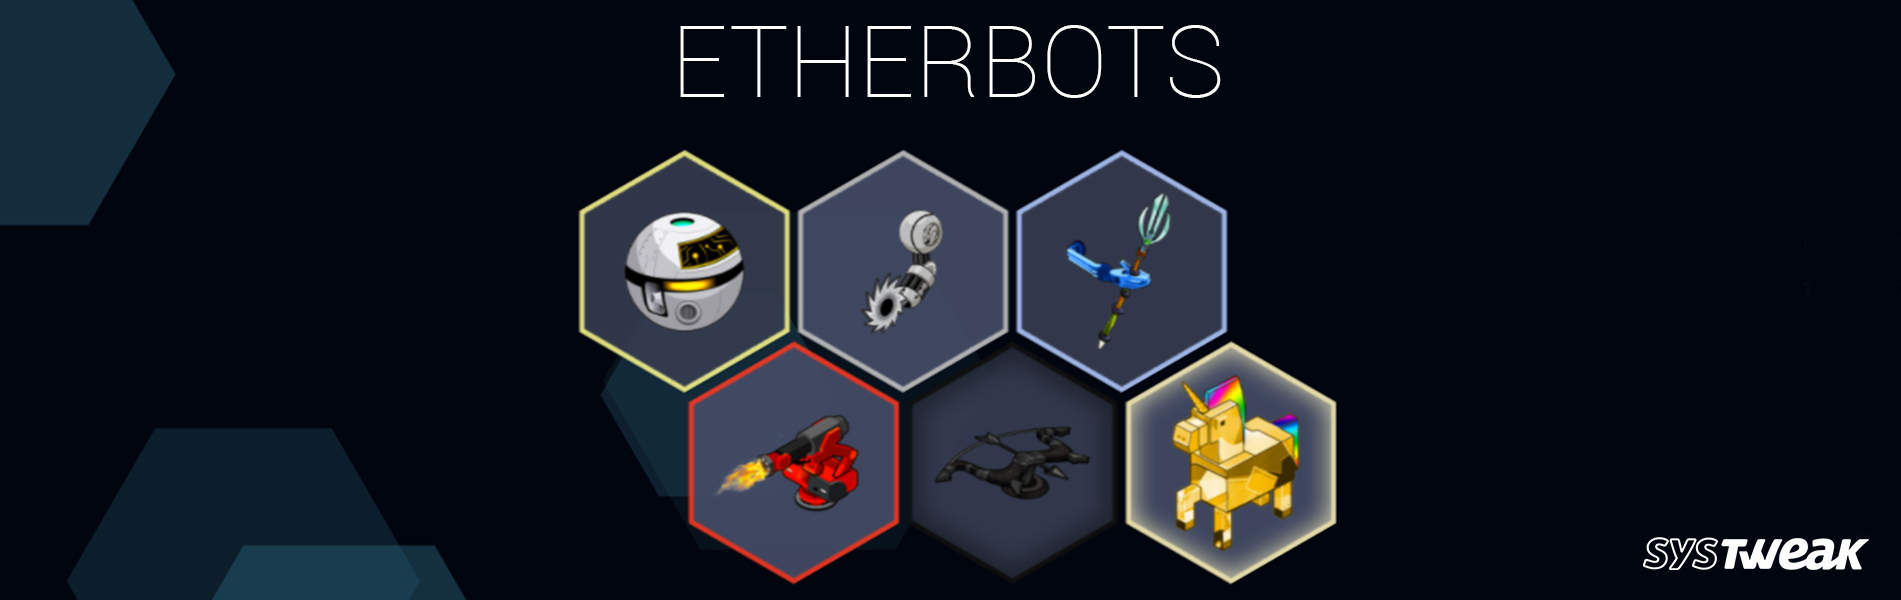 ETHERBOTS: The New Ethereum Blockchain Based Robotic App